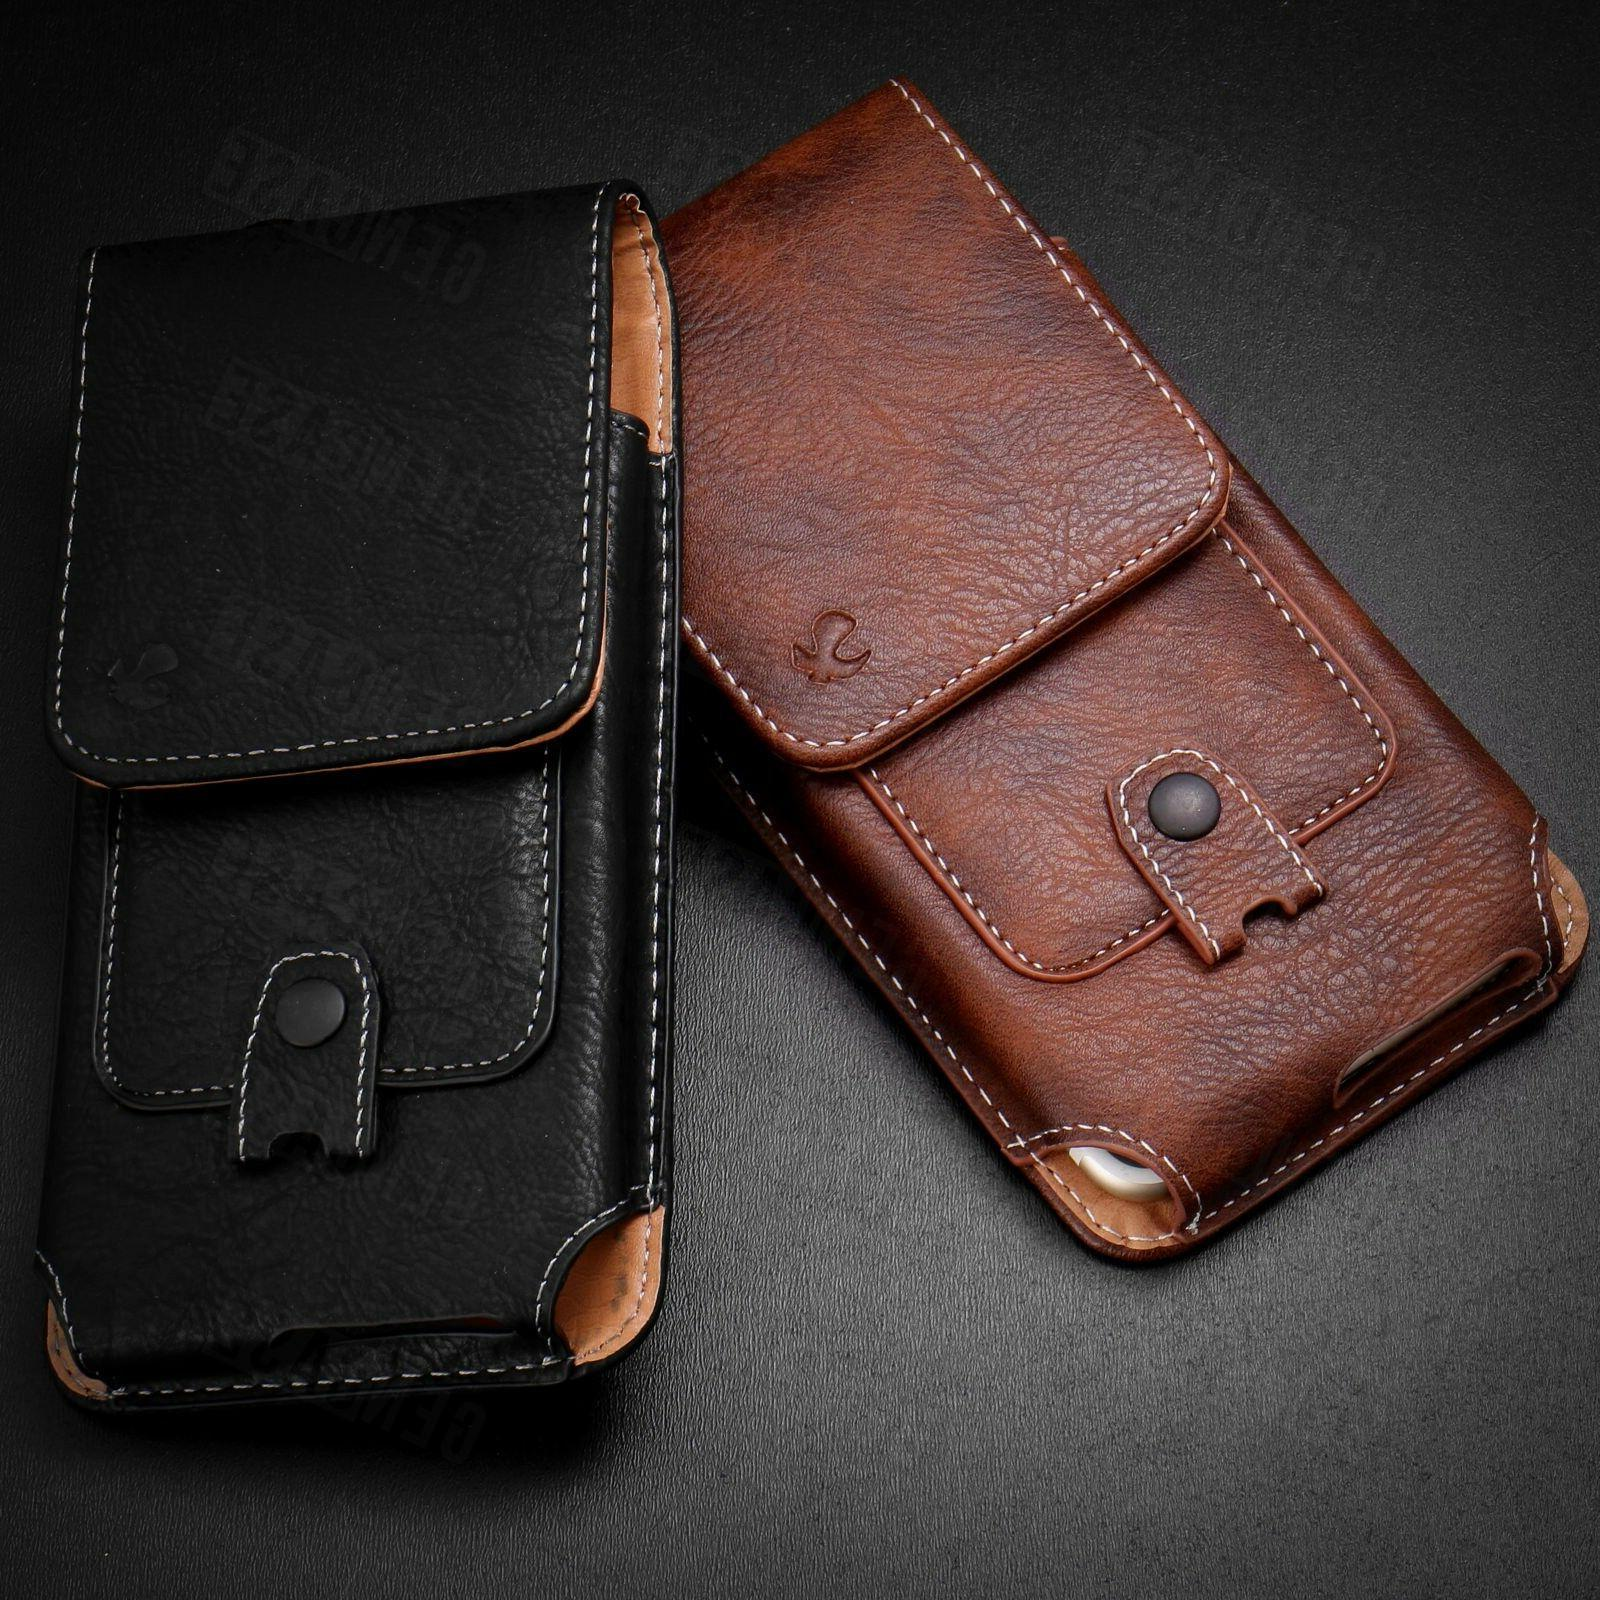 Vertical Wallet Pouch Belt iPhone 11 Max XS